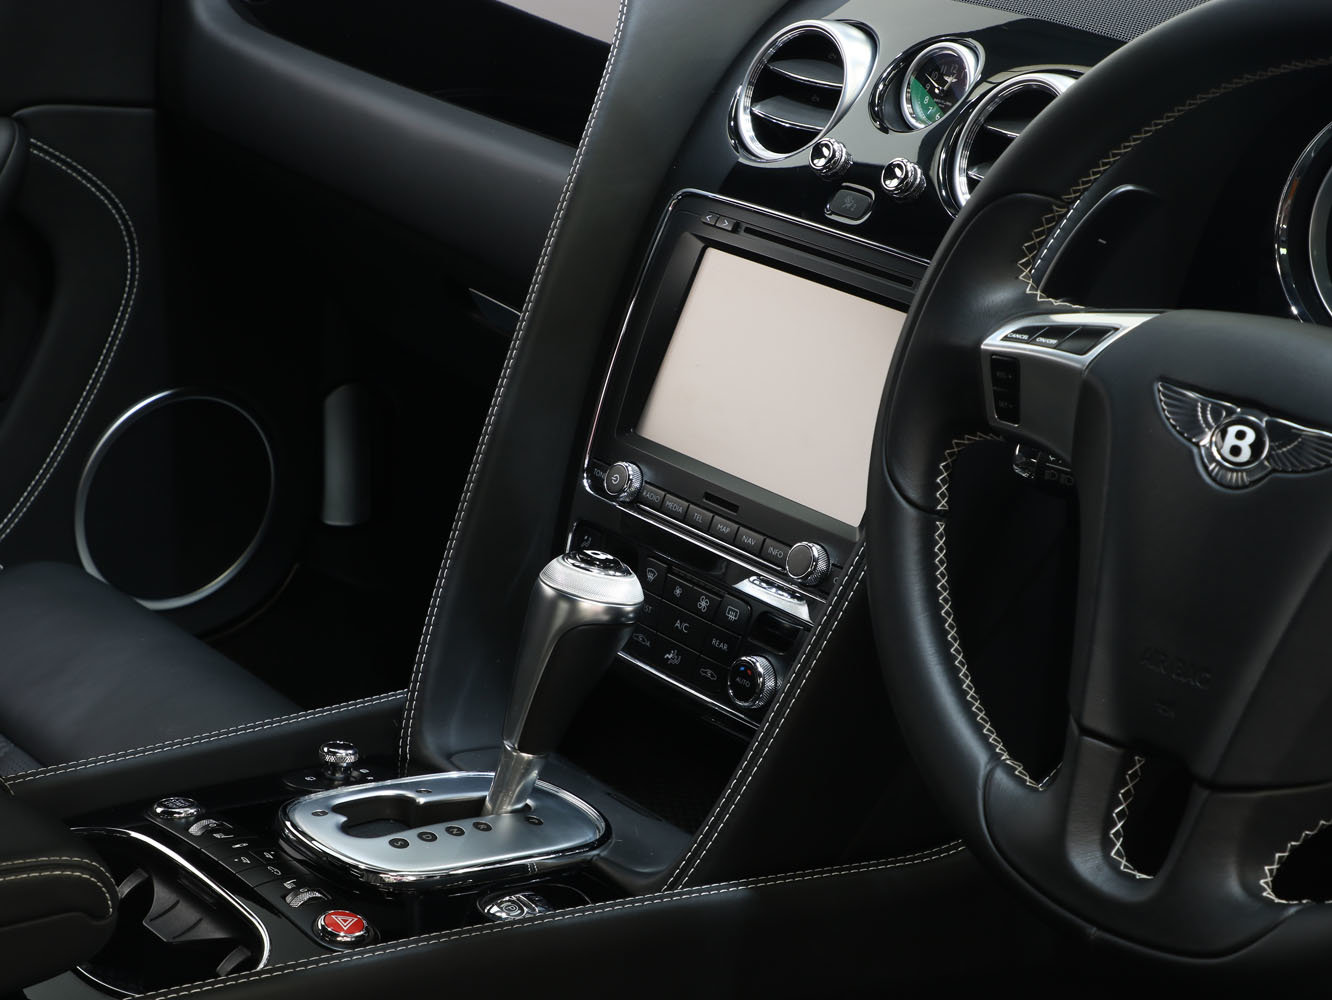 2013 13 13 BENTLEY CONTINENTAL 6.0 W12 GT SPEED AUTO For Sale (picture 6 of 6)